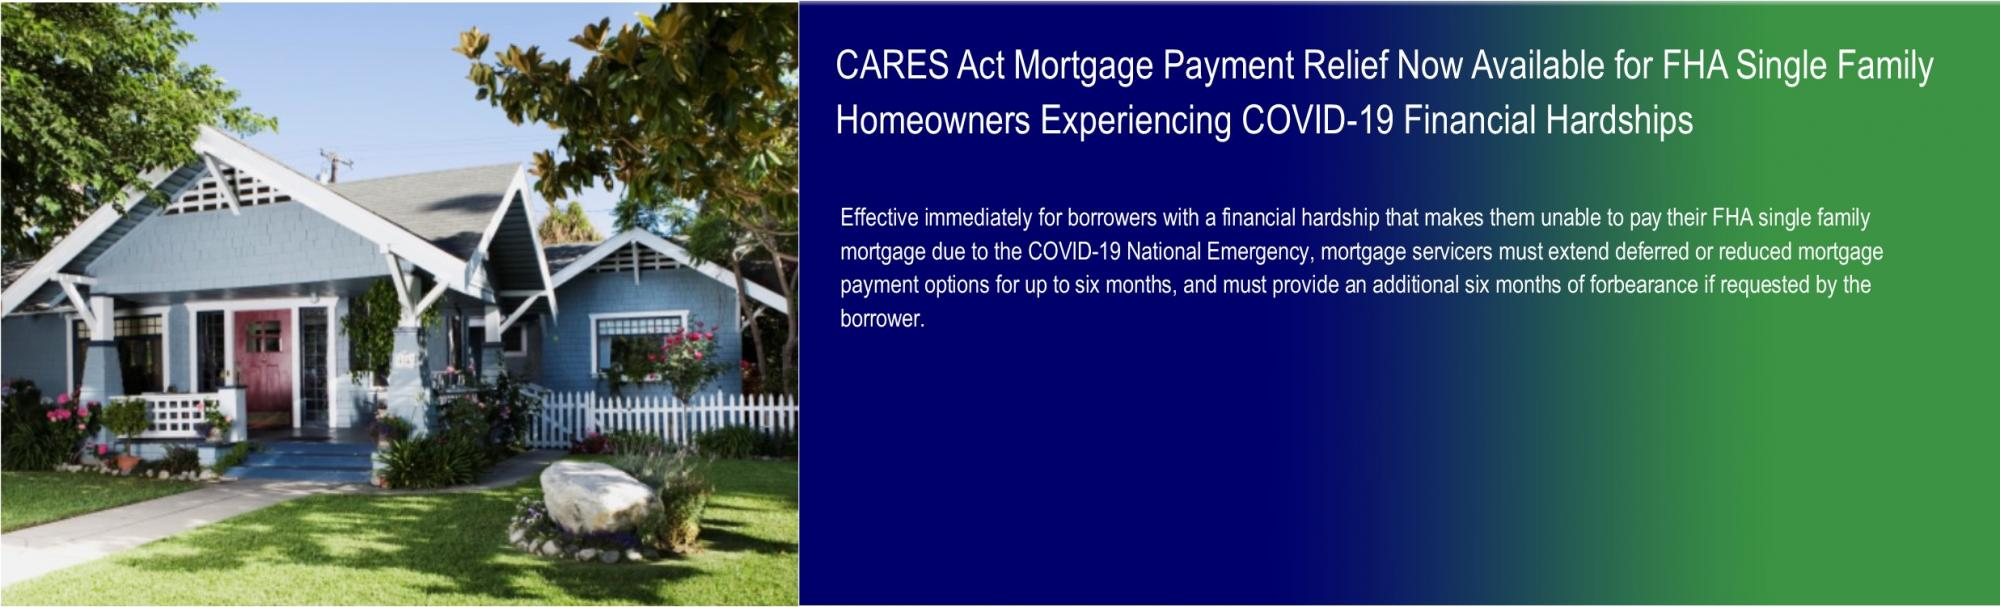 CARES Act Mortgage Payment Relief Now Available for FHA Single Family Homeowners Experiencing COVID-19 Financial Hardships.